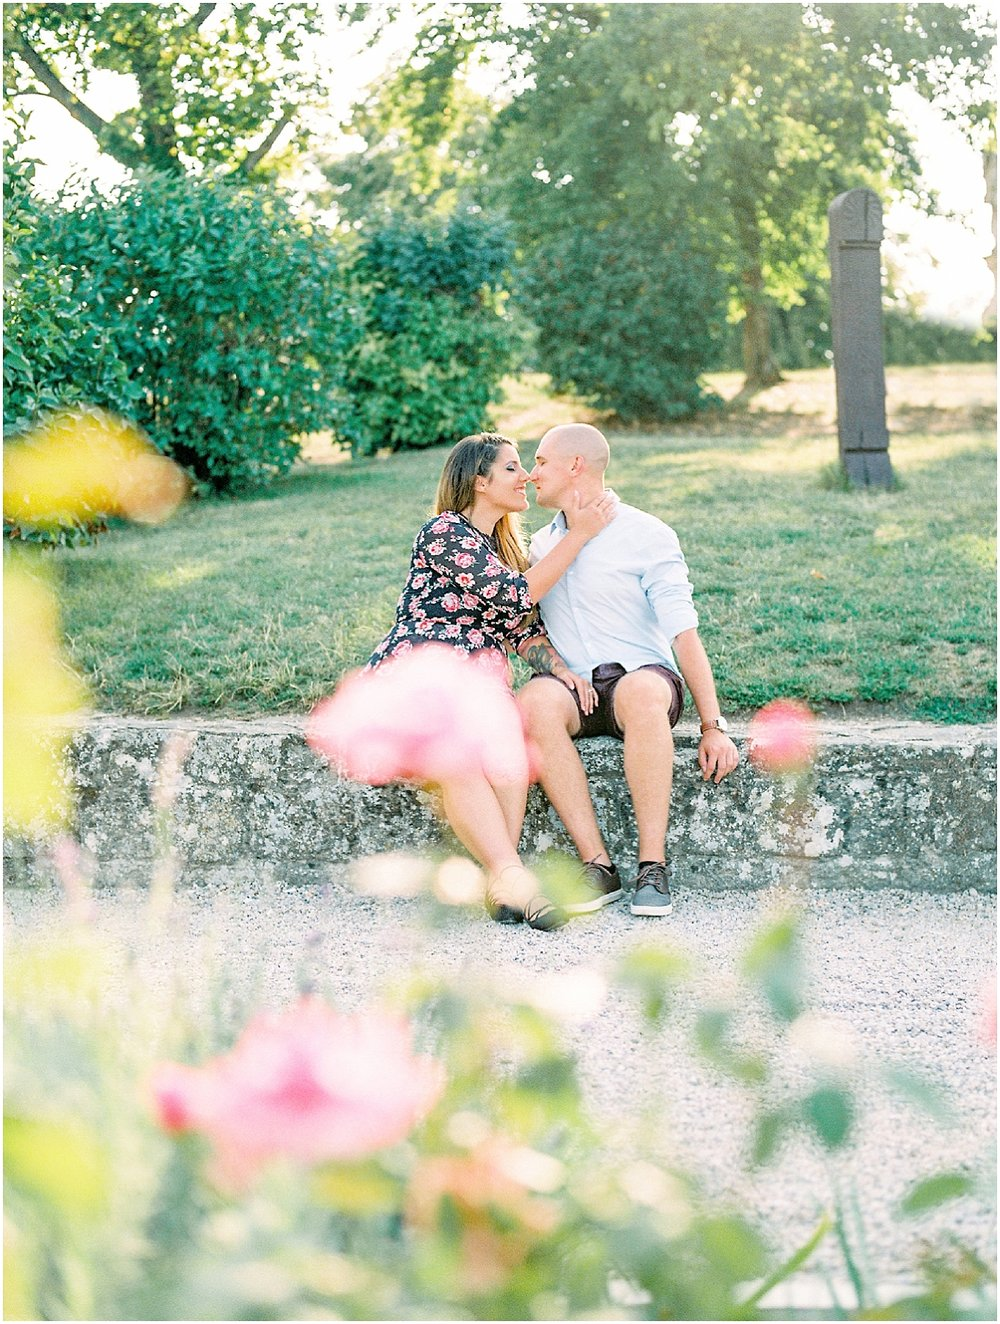 Lisa Silva Photography- Ponte Vedra Beach, St. Augustine and Jacksonville, Florida Fine Art Film Wedding and Boudoir Photography- Engagement Session in Tihany, Hungary- Destination Wedding Photographer_0020.jpg